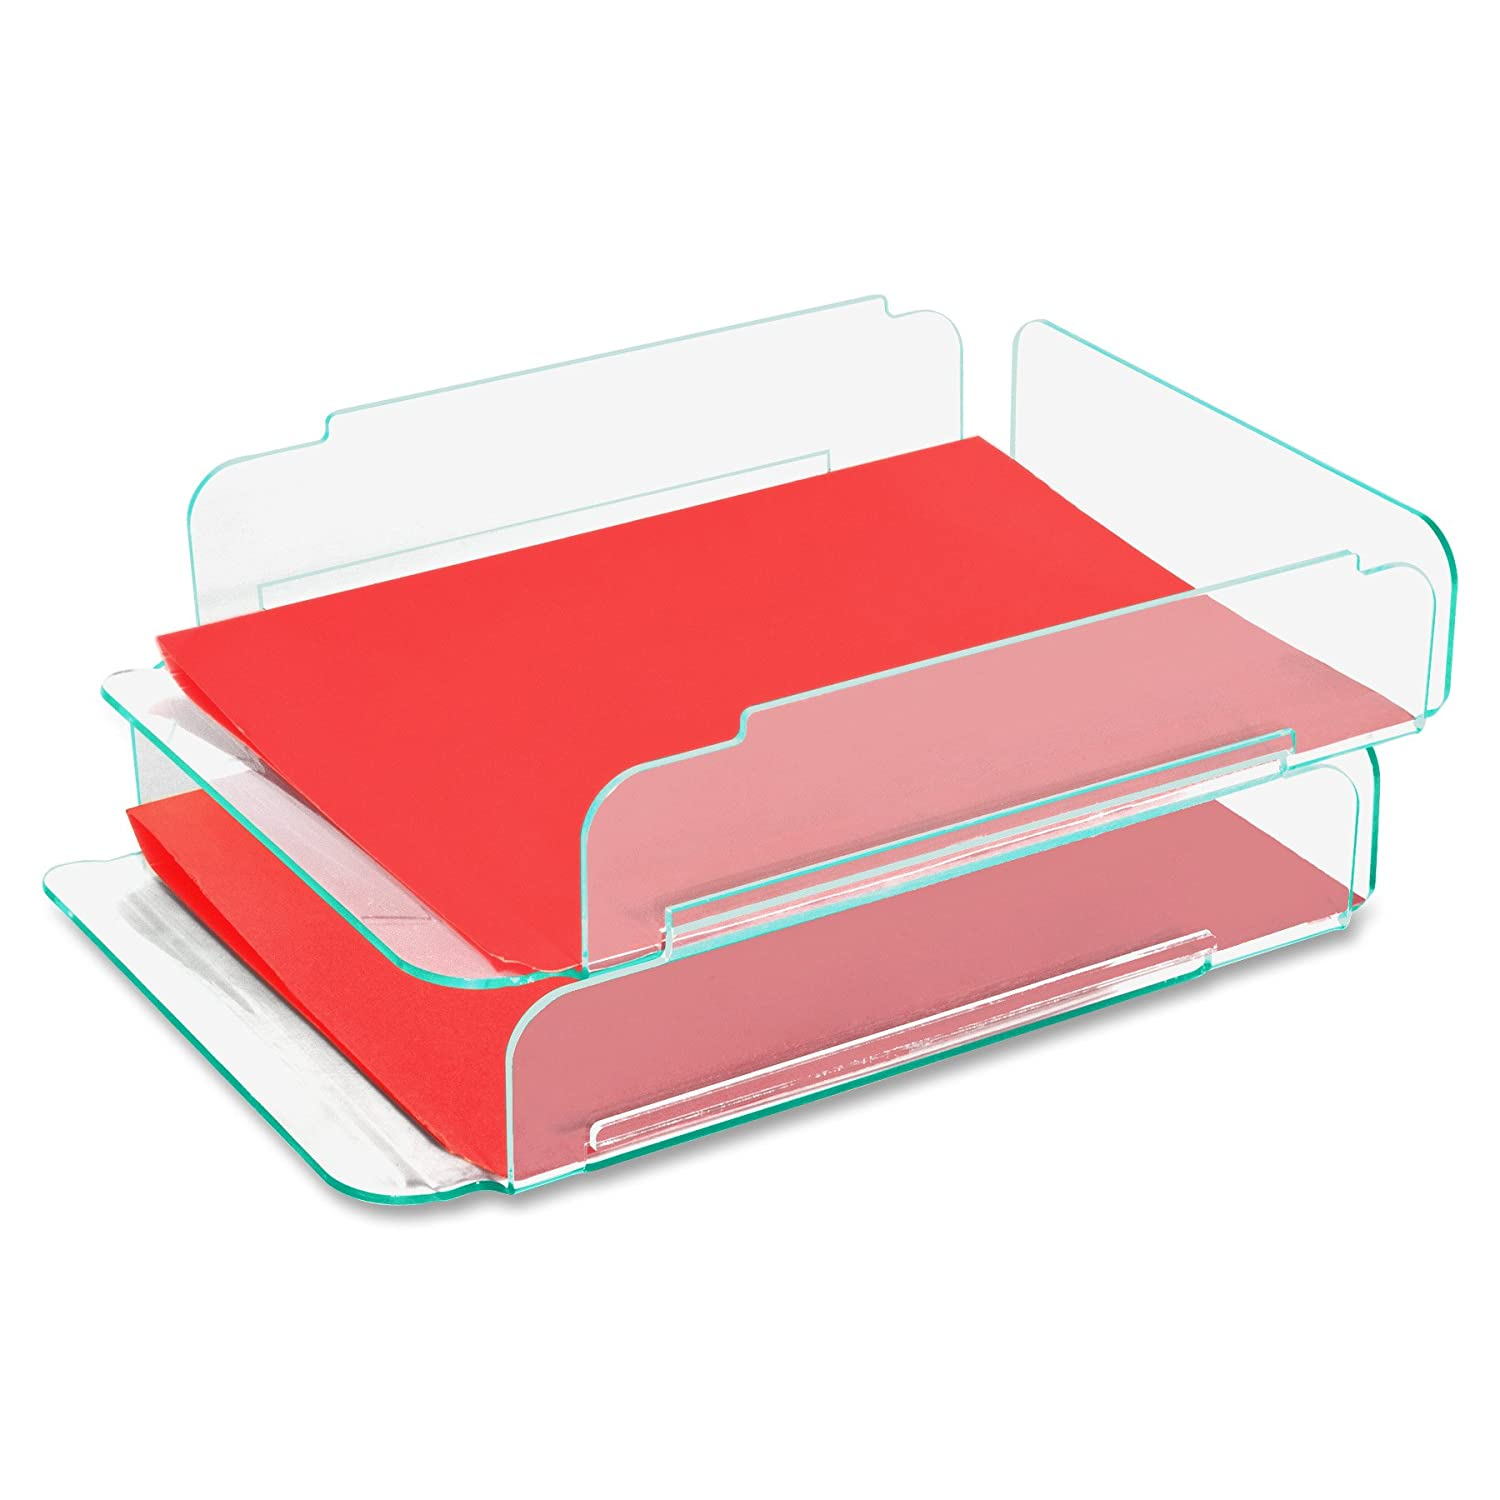 Amazon.com : Lorell LLR80655 Stacking Letter Tray, 2 per Pack, Clear ...